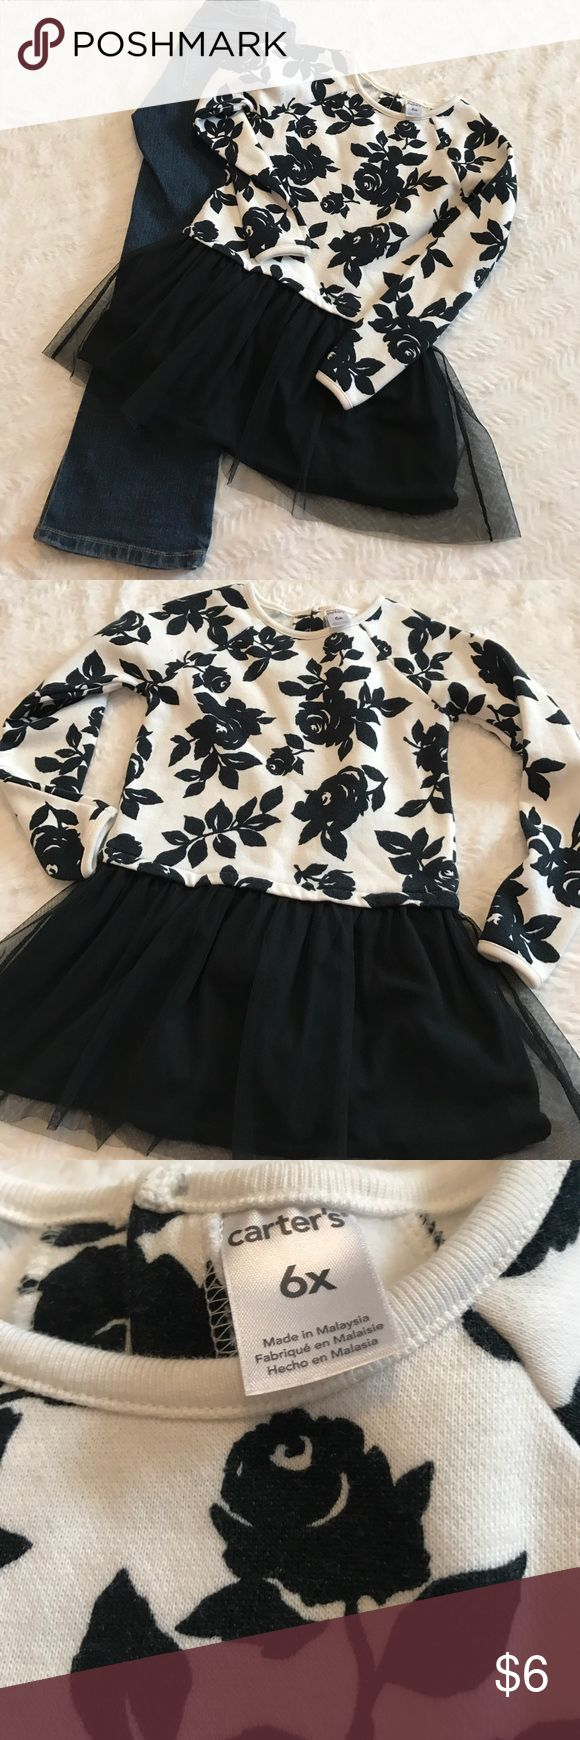 Girls tulle peplum top. Carters size 6x girls tulle peplum long sleeve top. Only worn about 2-3 times. Looks so cute with red or pink leggings or jeans. The inside of the top is a fleece so is very warm also. Carter's Shirts & Tops Blouses